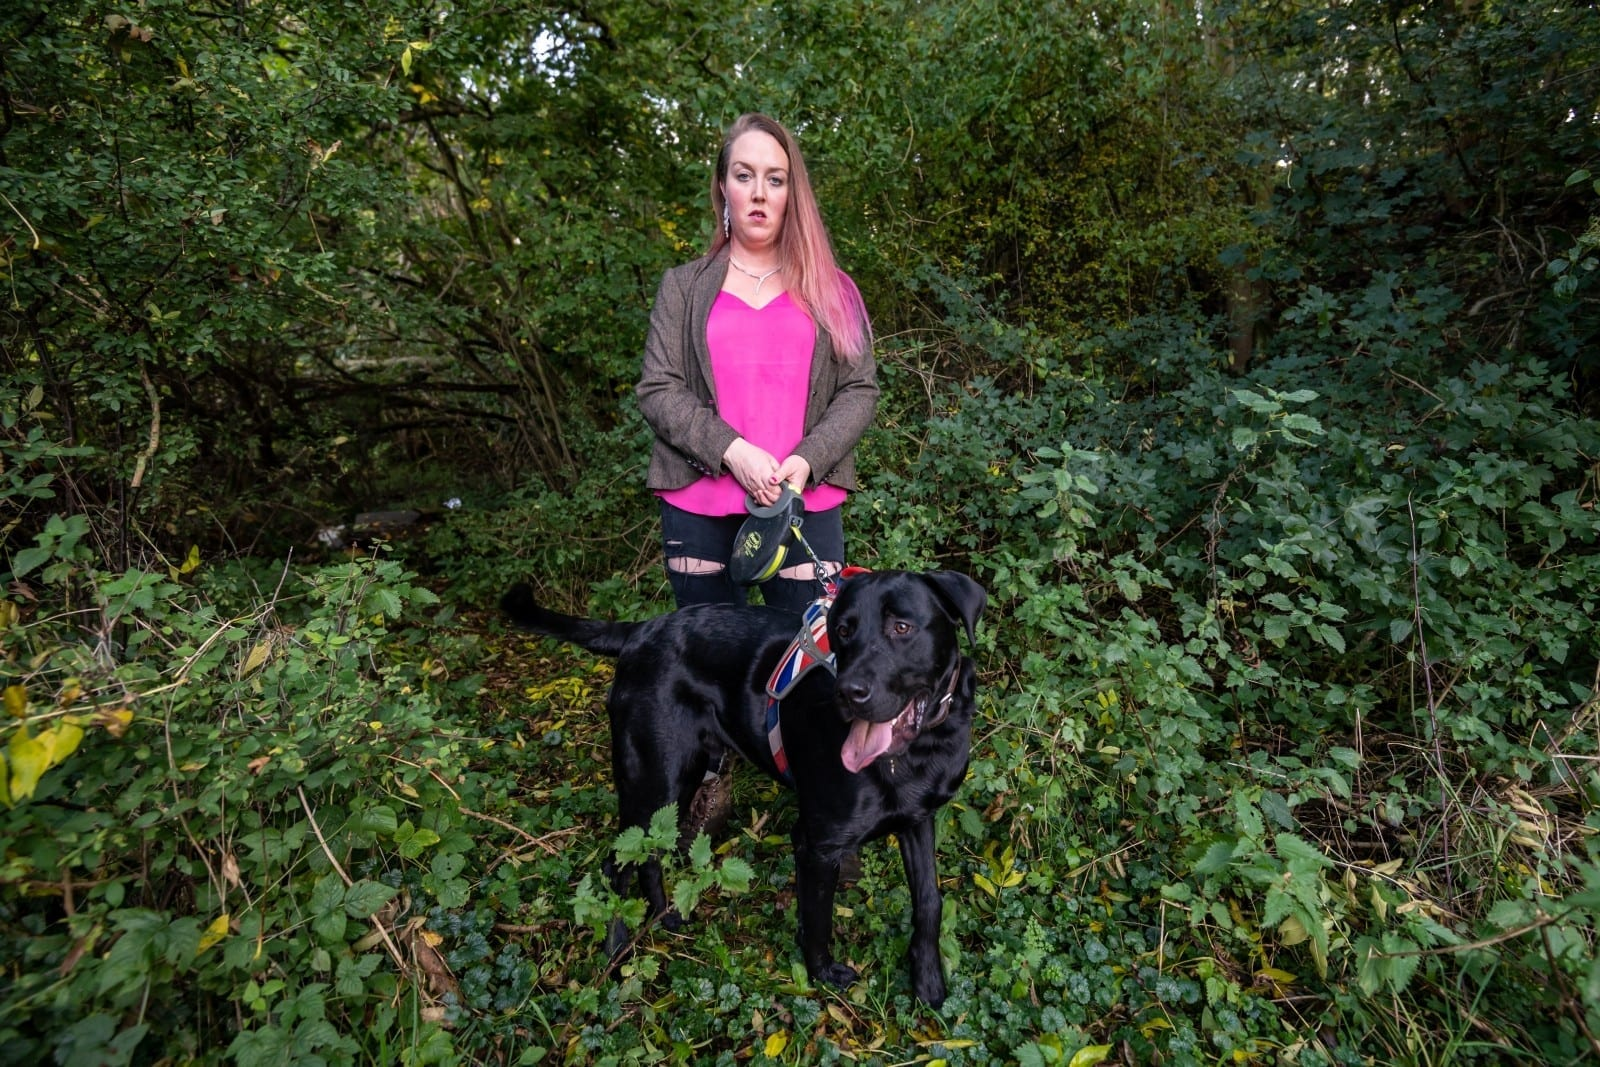 Dog Owner's Horror As Pet Is Attacked By 'PANTHER' During Walk In The Woods